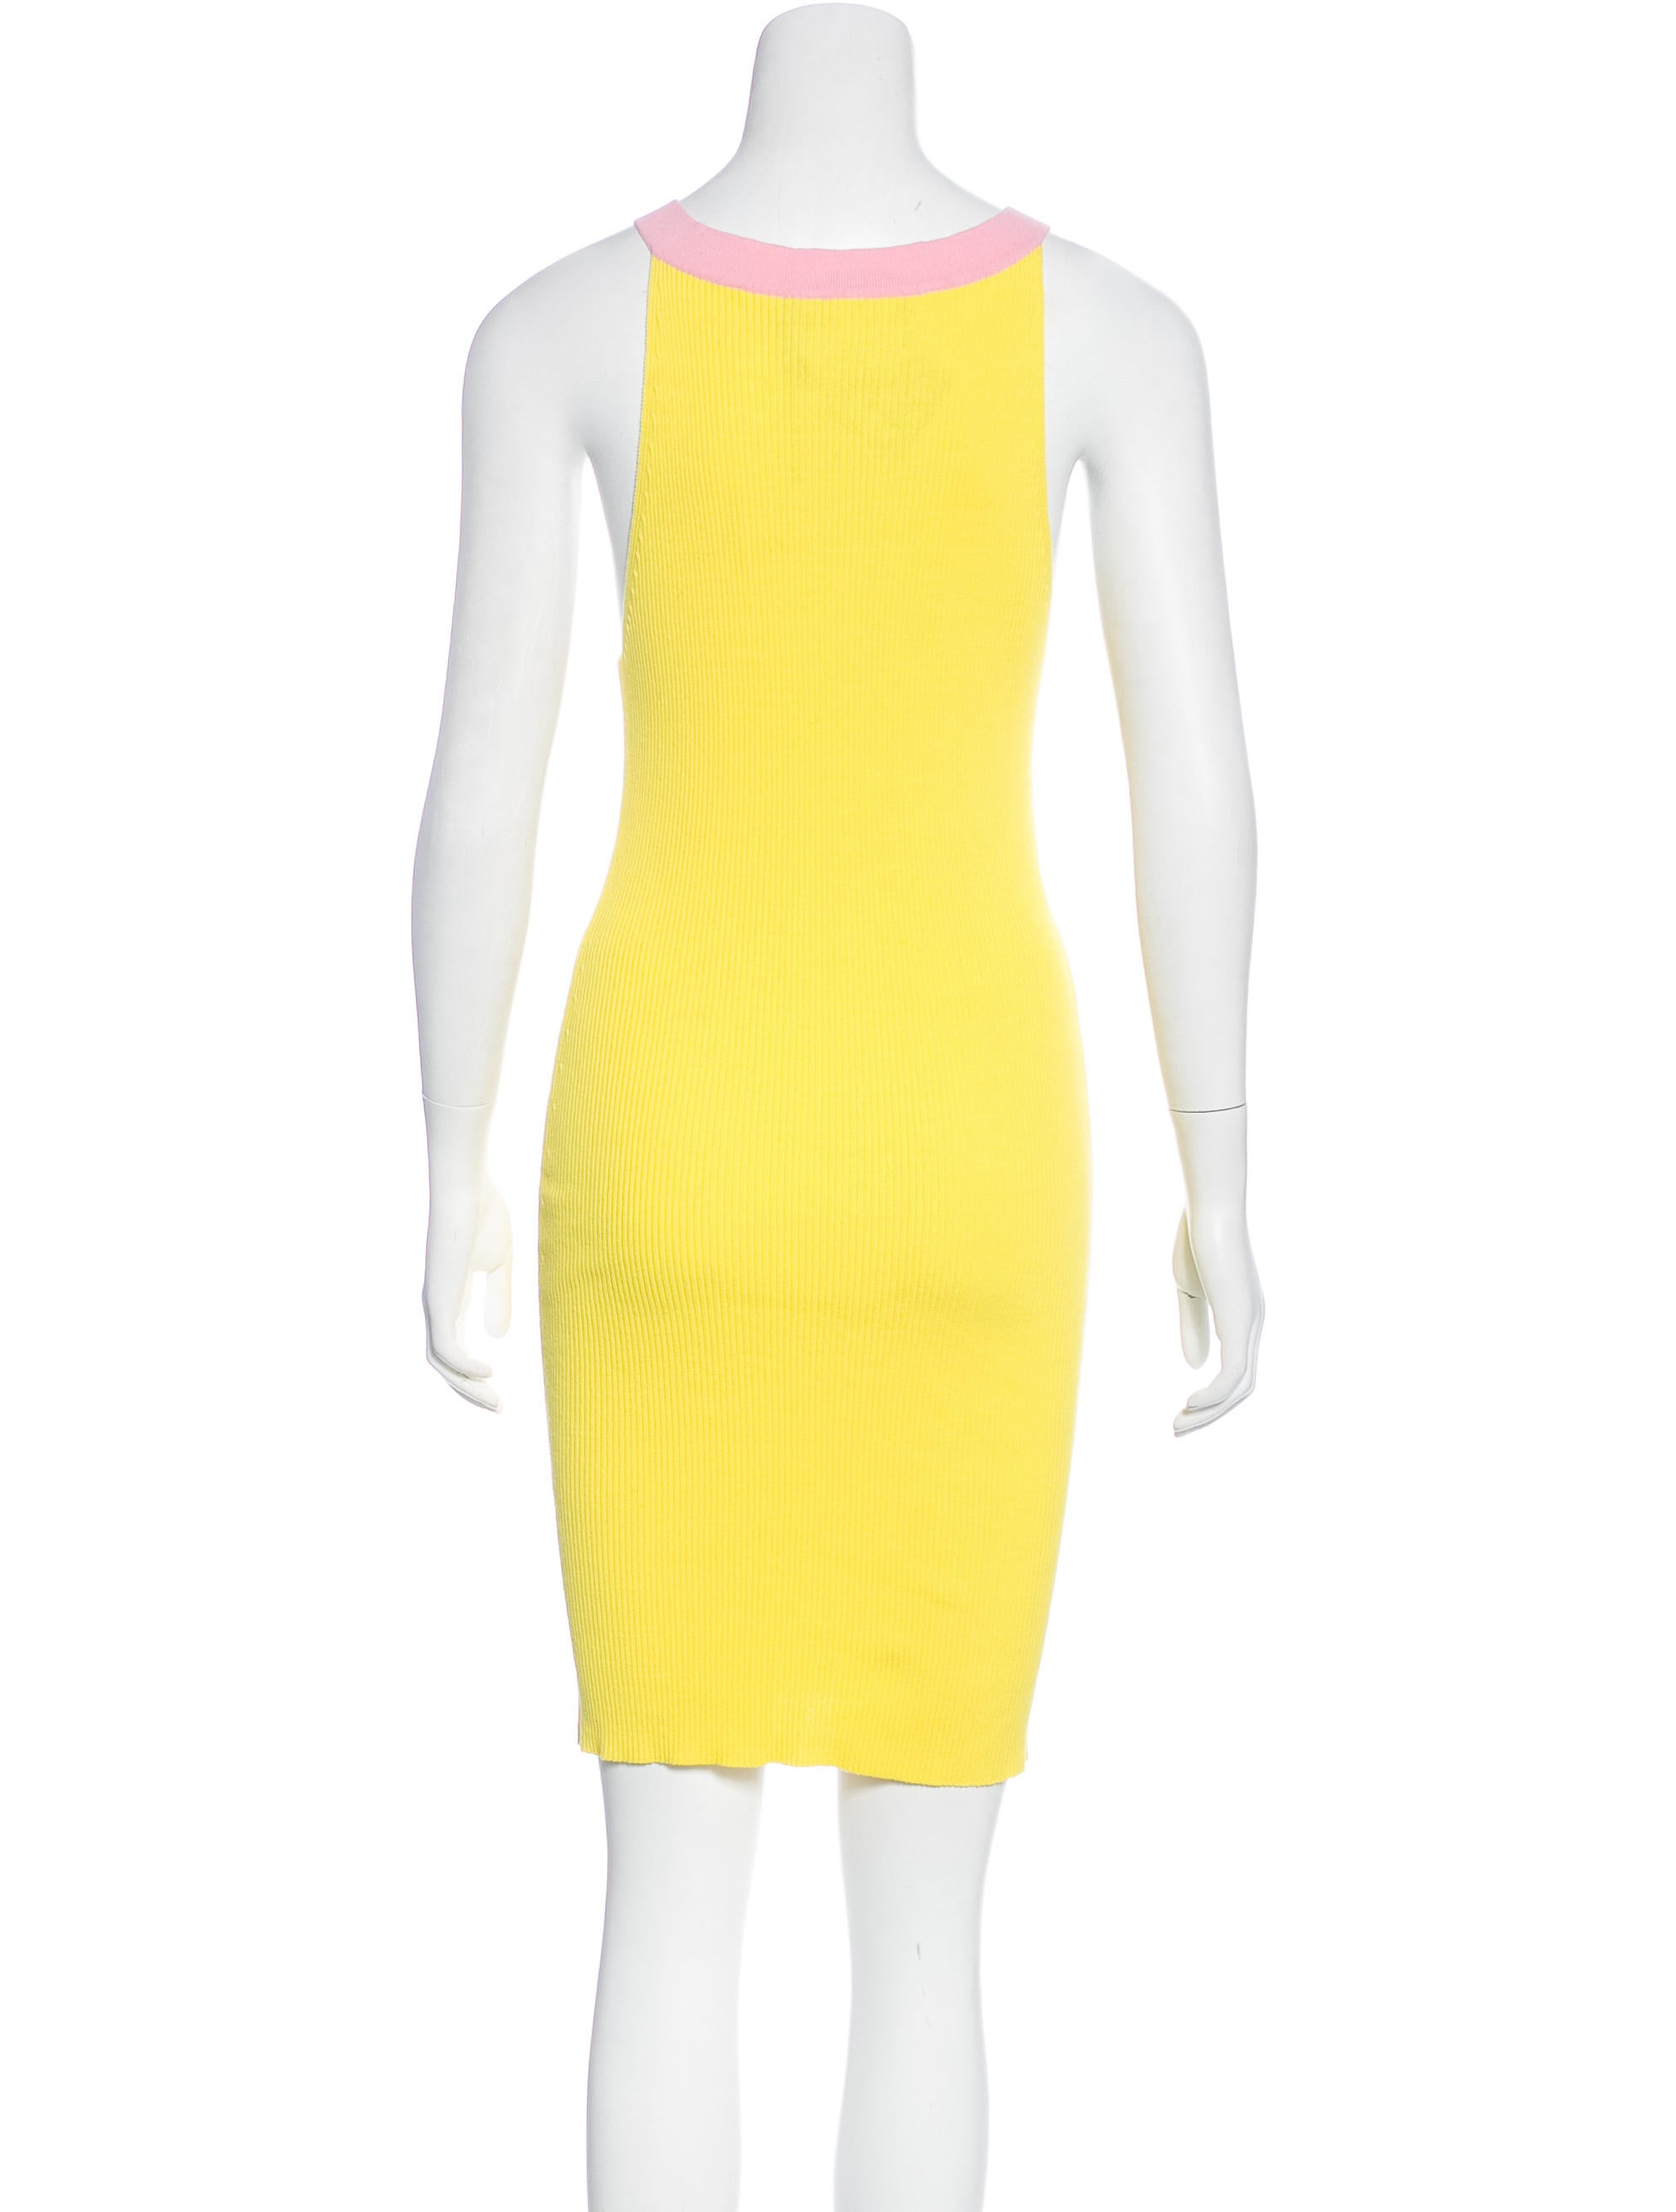 Boutique moschino rib knit sleeveless dress w tags for Boutique labels clothing